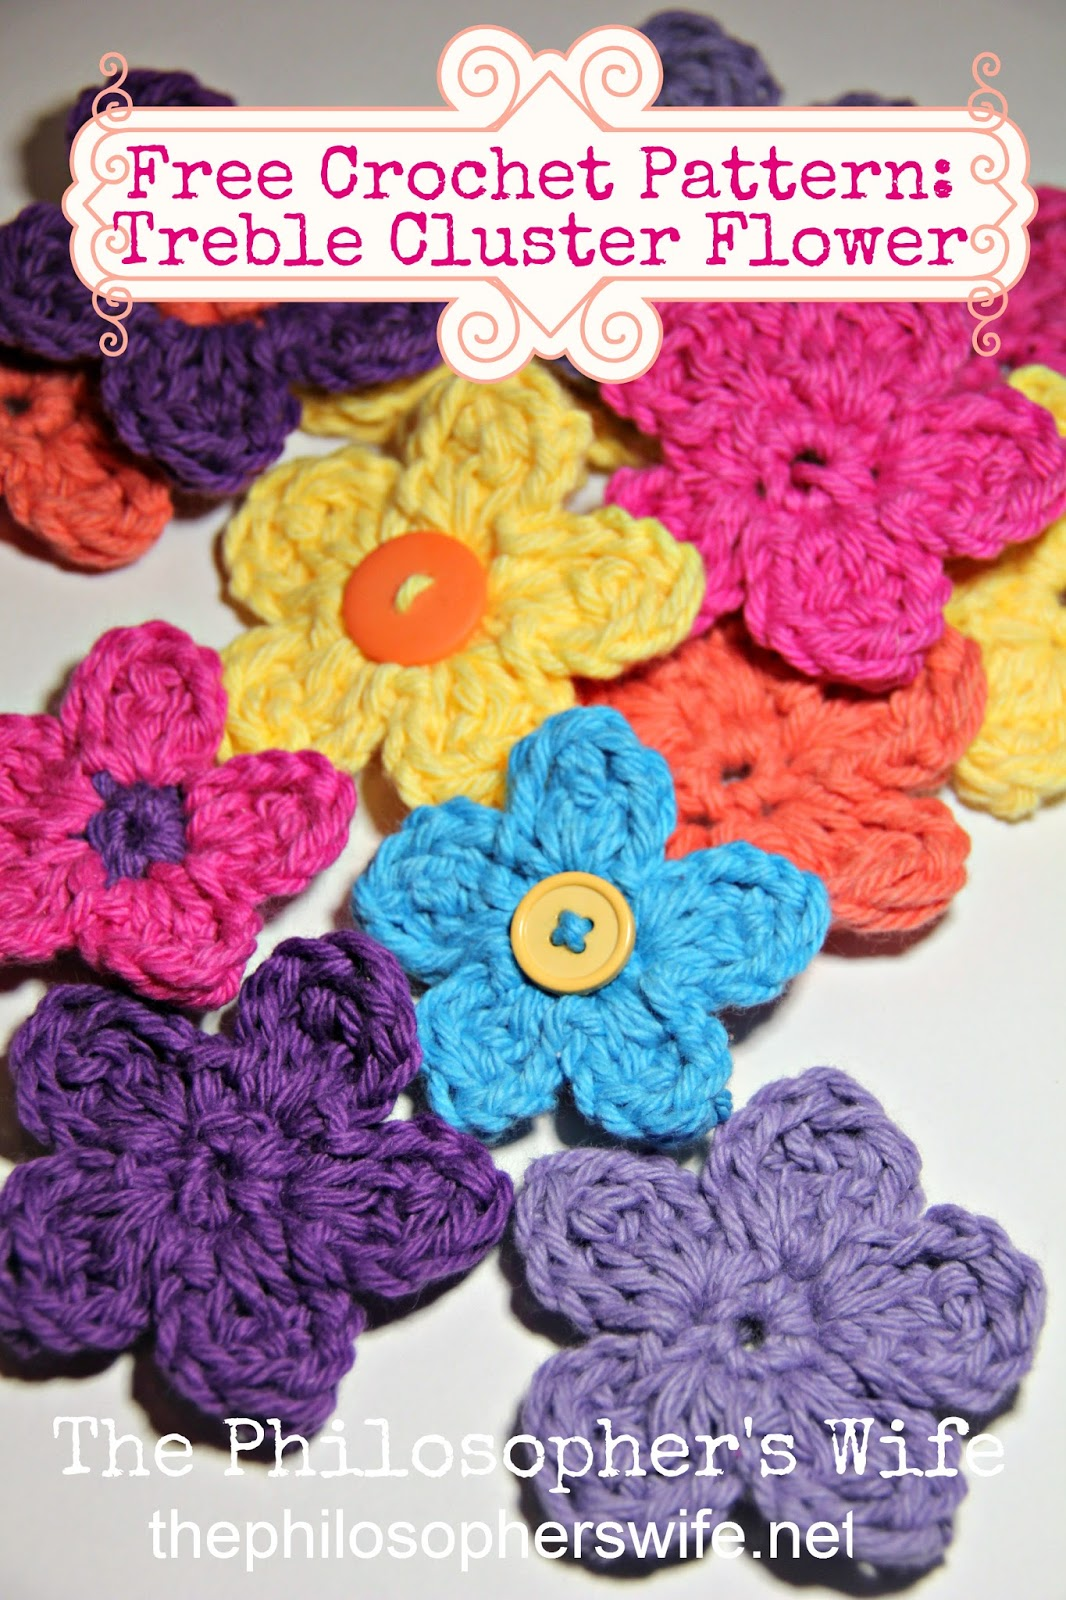 The Philosopher\'s Wife: Free Crochet Pattern: Treble Cluster Flower